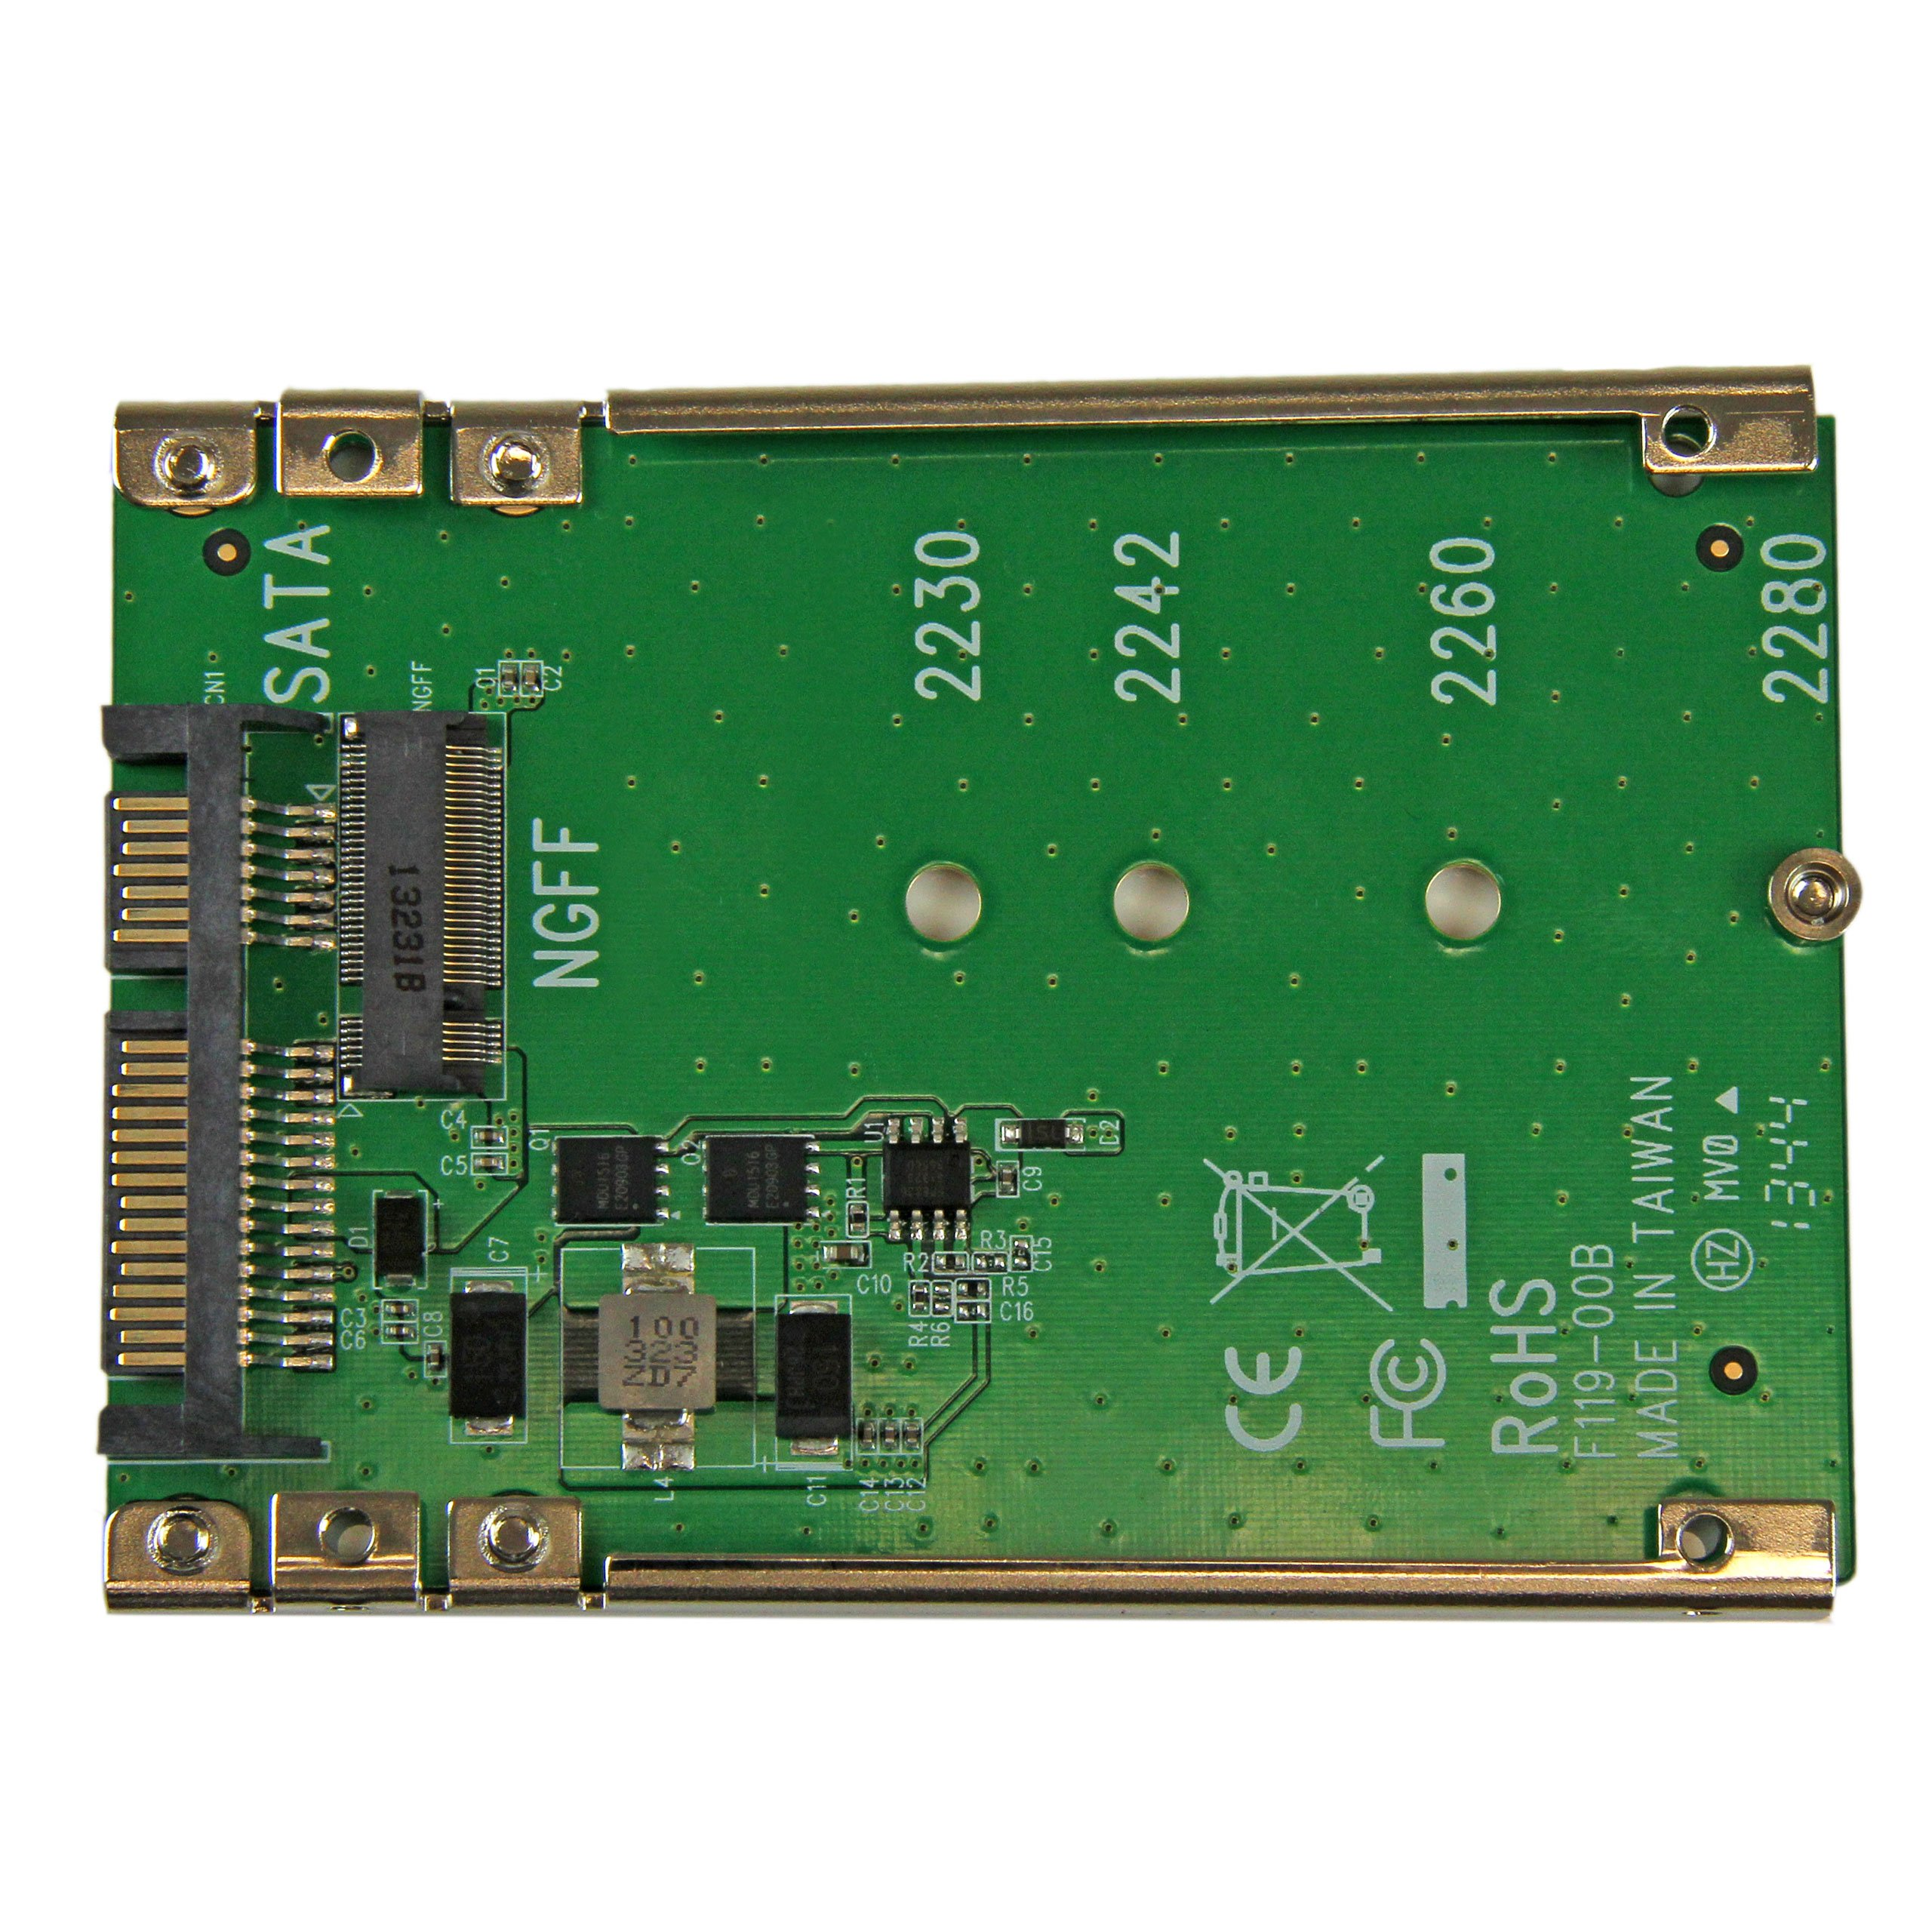 StarTech M.2 NGFF SSD to 2.5in SATA Adapter Converter (SAT32M225) by StarTech (Image #3)